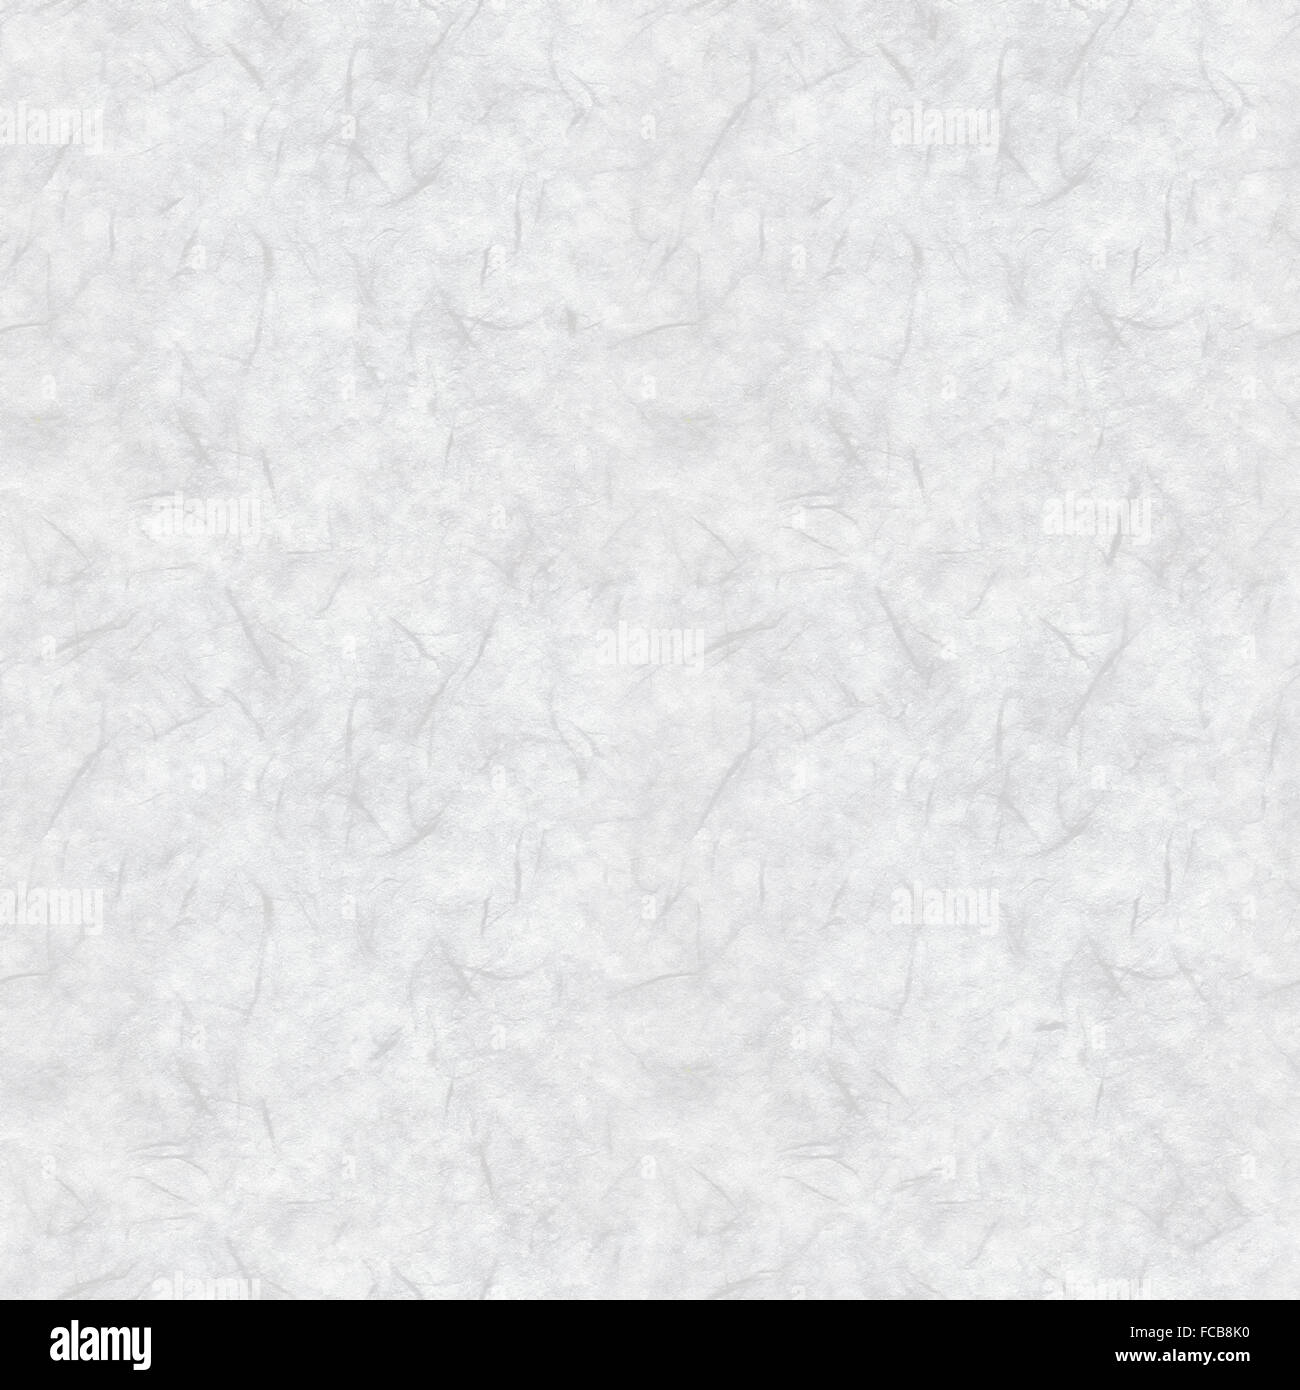 Rice Paper Seamless Texture Background - Stock Image